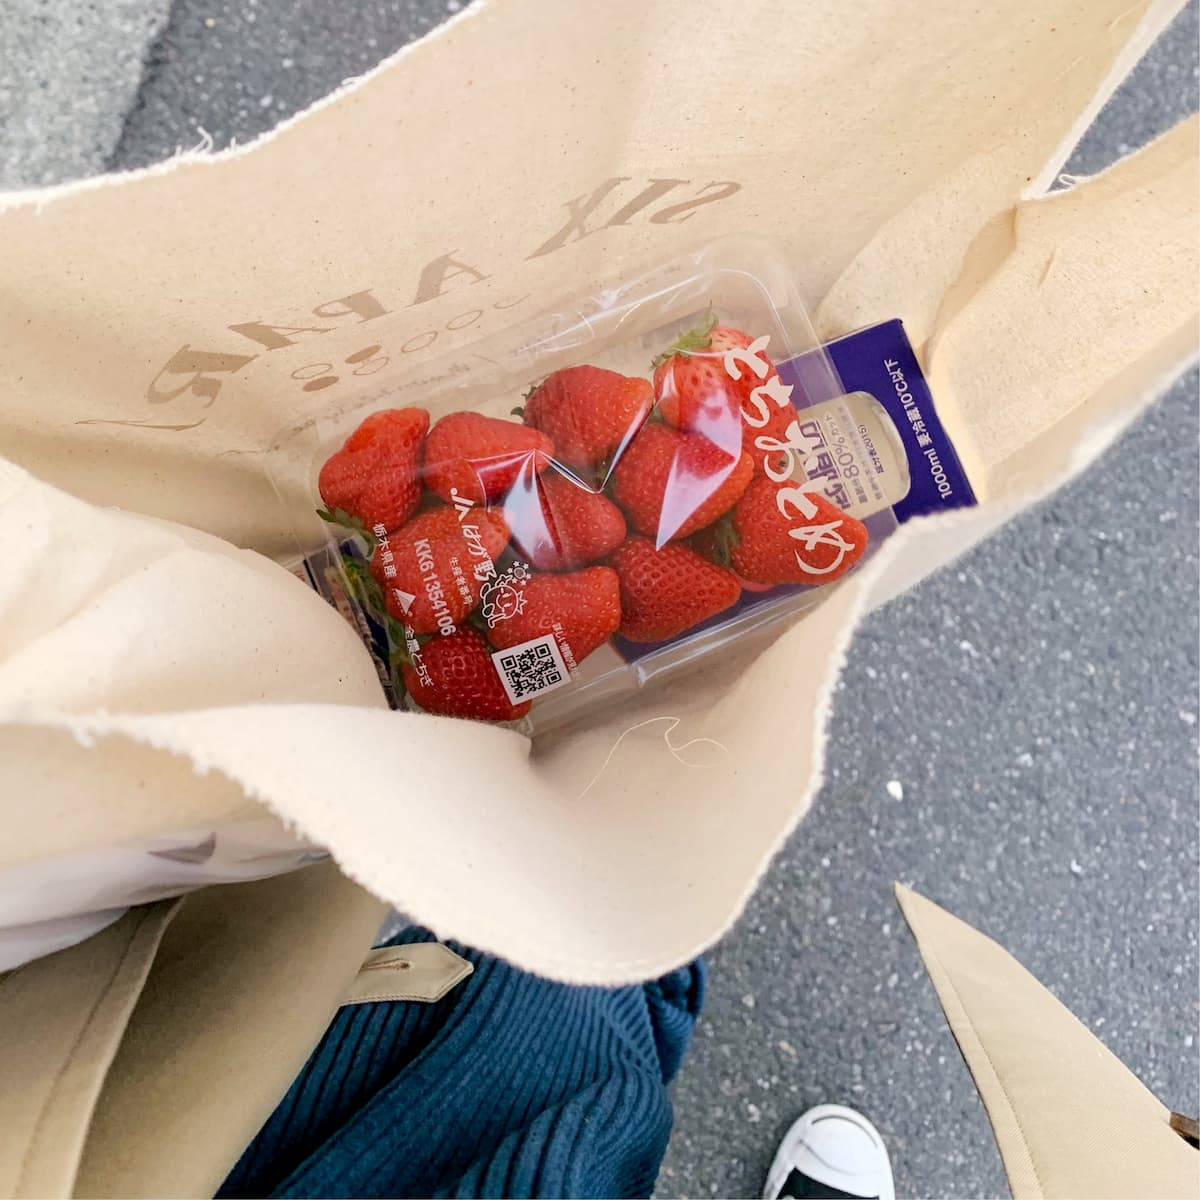 bag_milk_strawberry.jpg